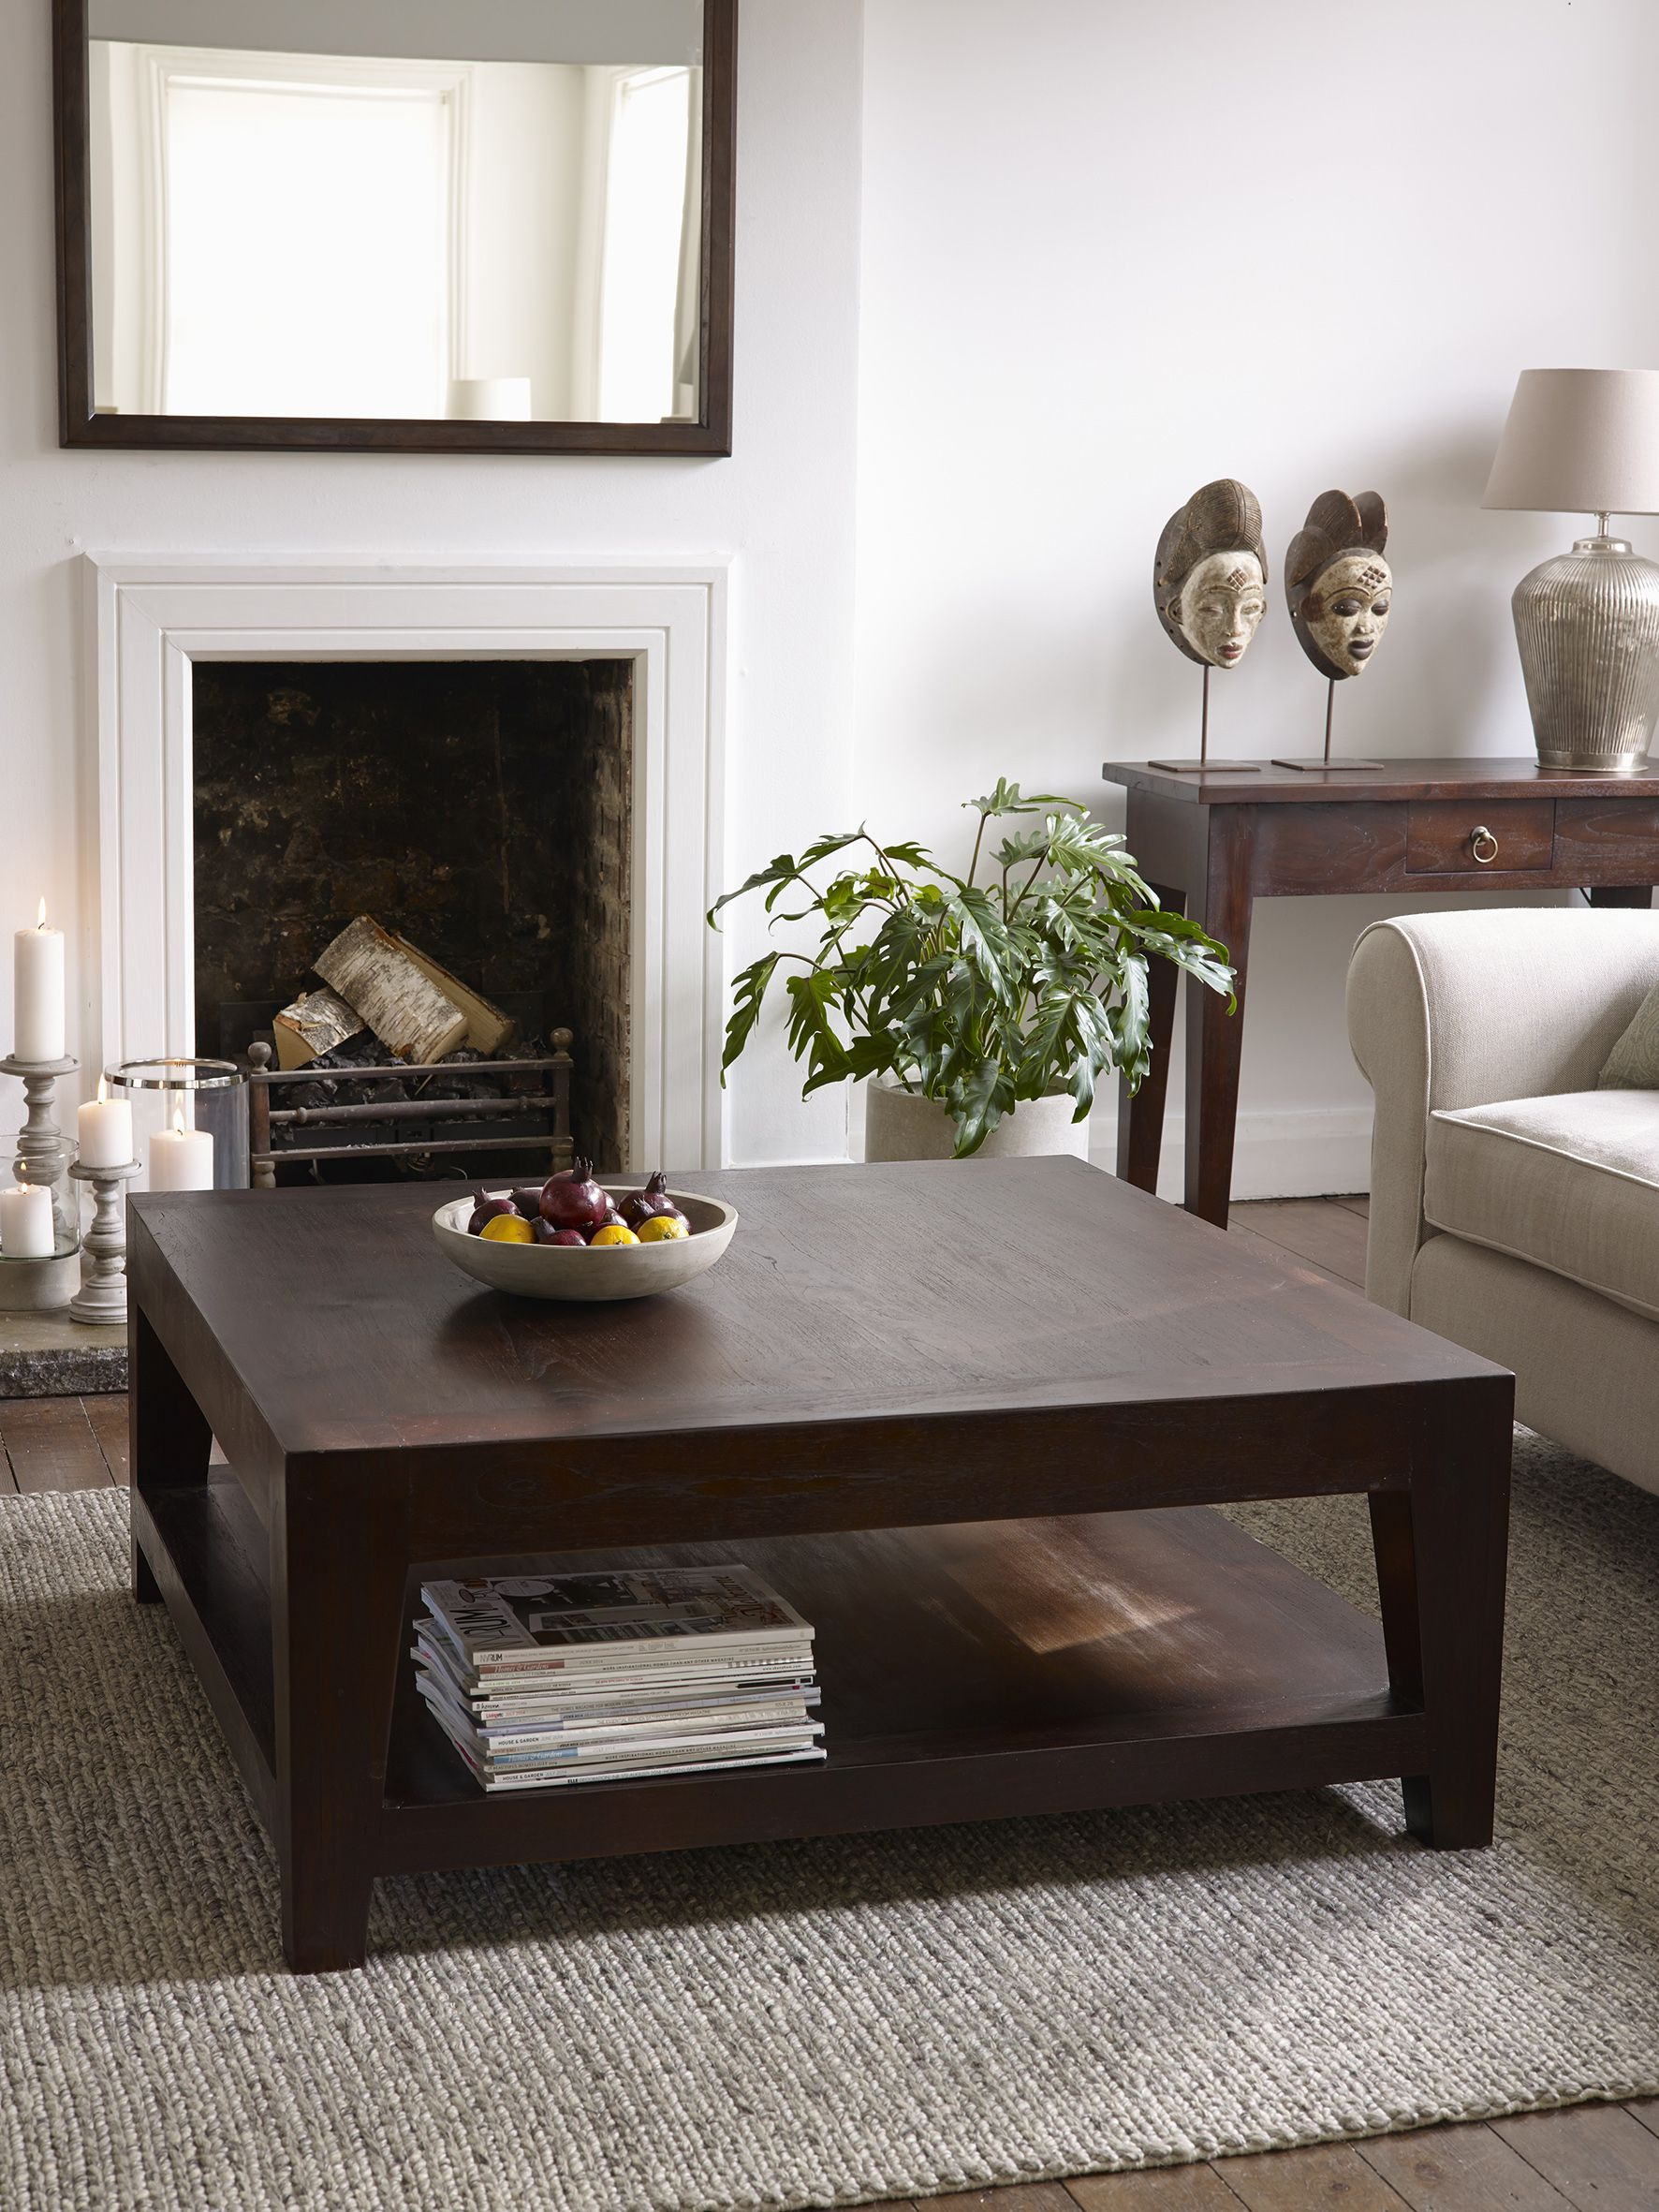 Our Seba Coffee Tables Are Handcrafted In Indonesia From Solid